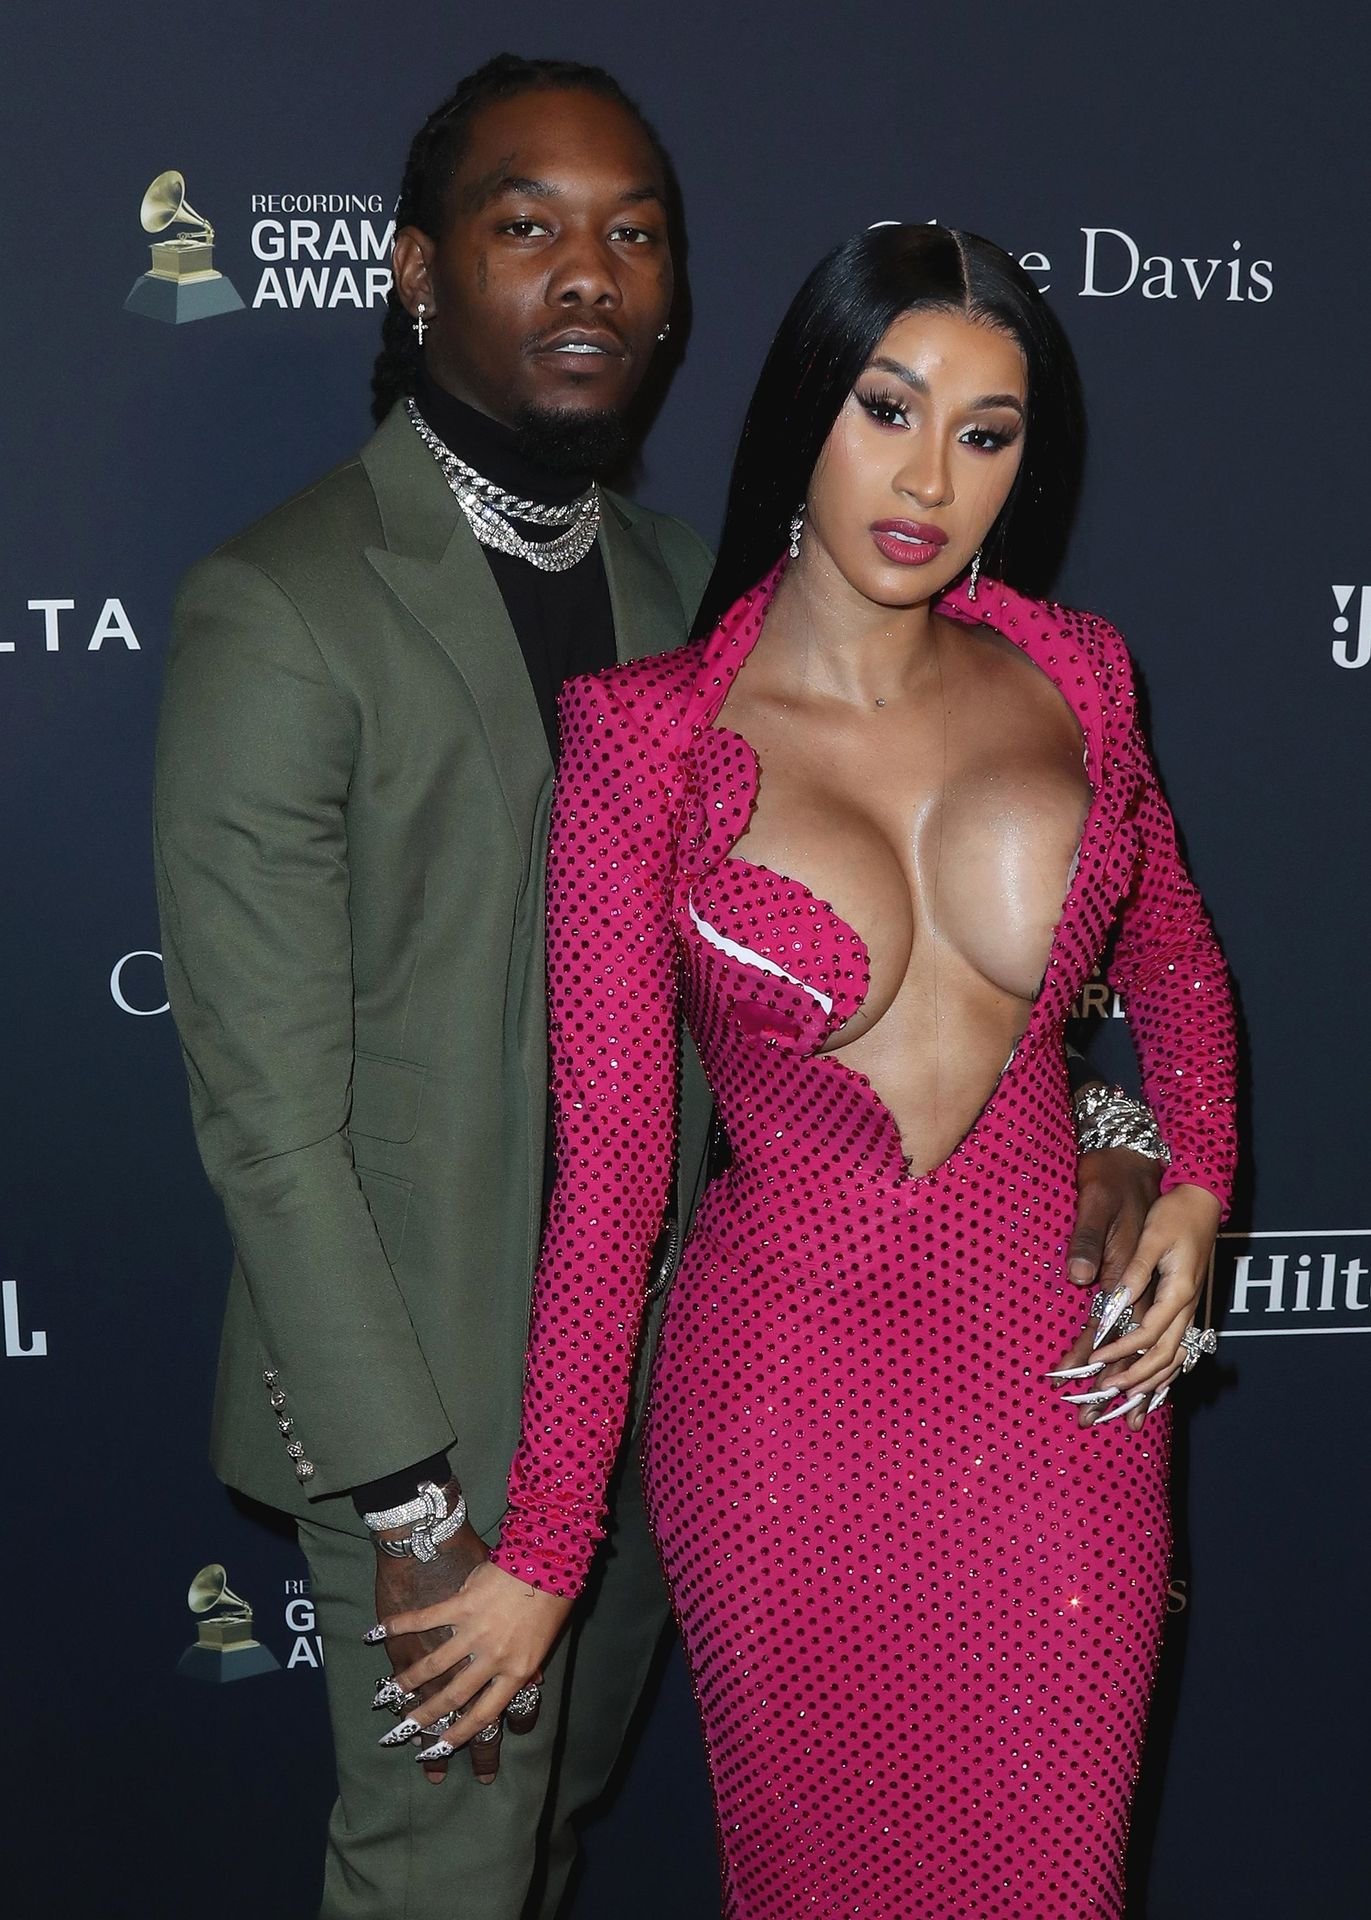 Offset Covers Cardi B's Boobs To Avoid Wardrobe Malfunction At Clive Davis Pre Grammy Party 0032